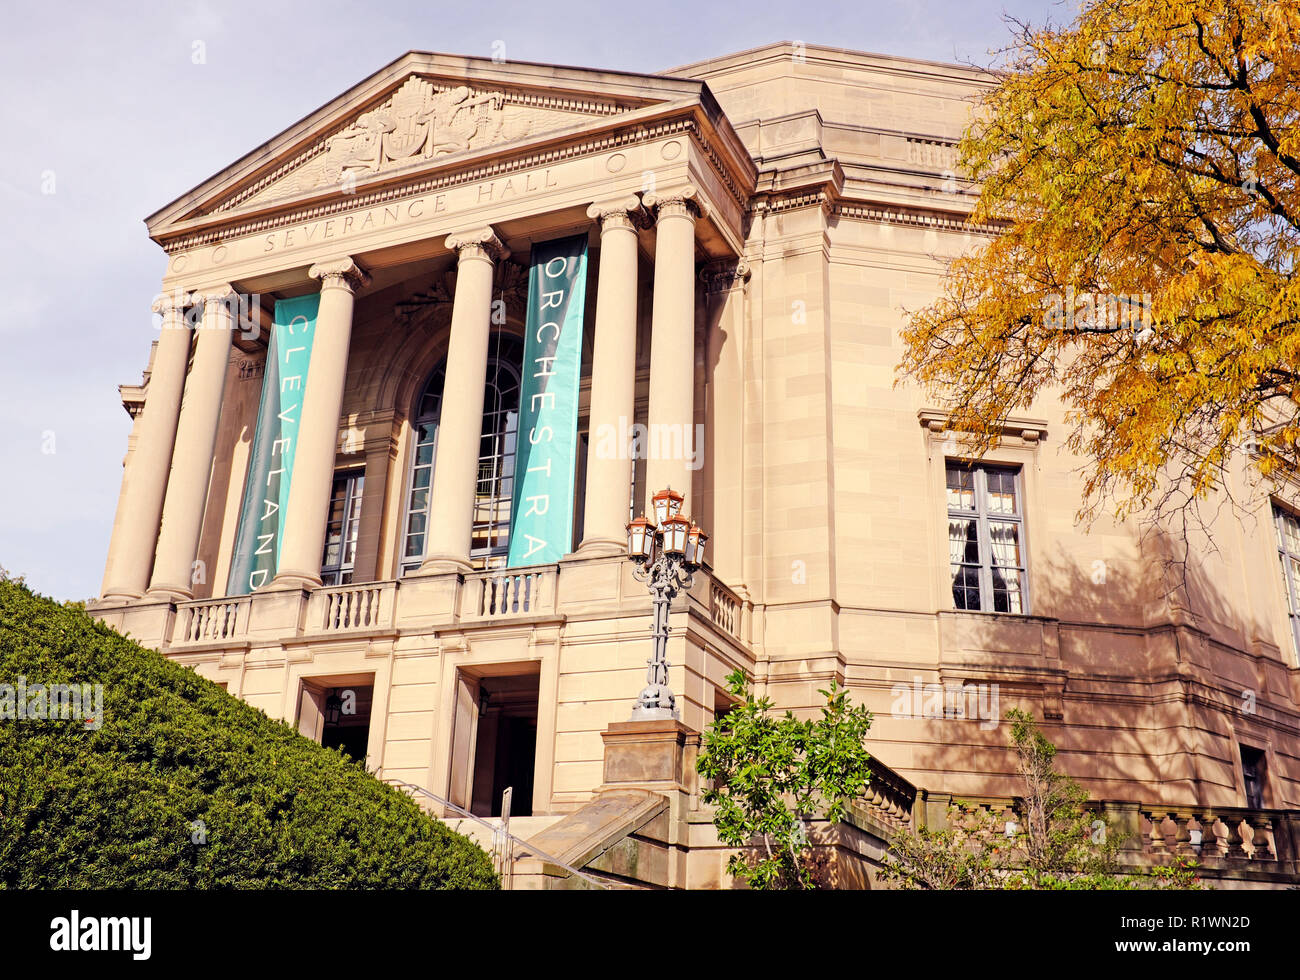 Severance Hall, home of the Cleveland Orchestra, in Cleveland, Ohio, USA with its classical exterior is complemented by the fall colored foliage. - Stock Image